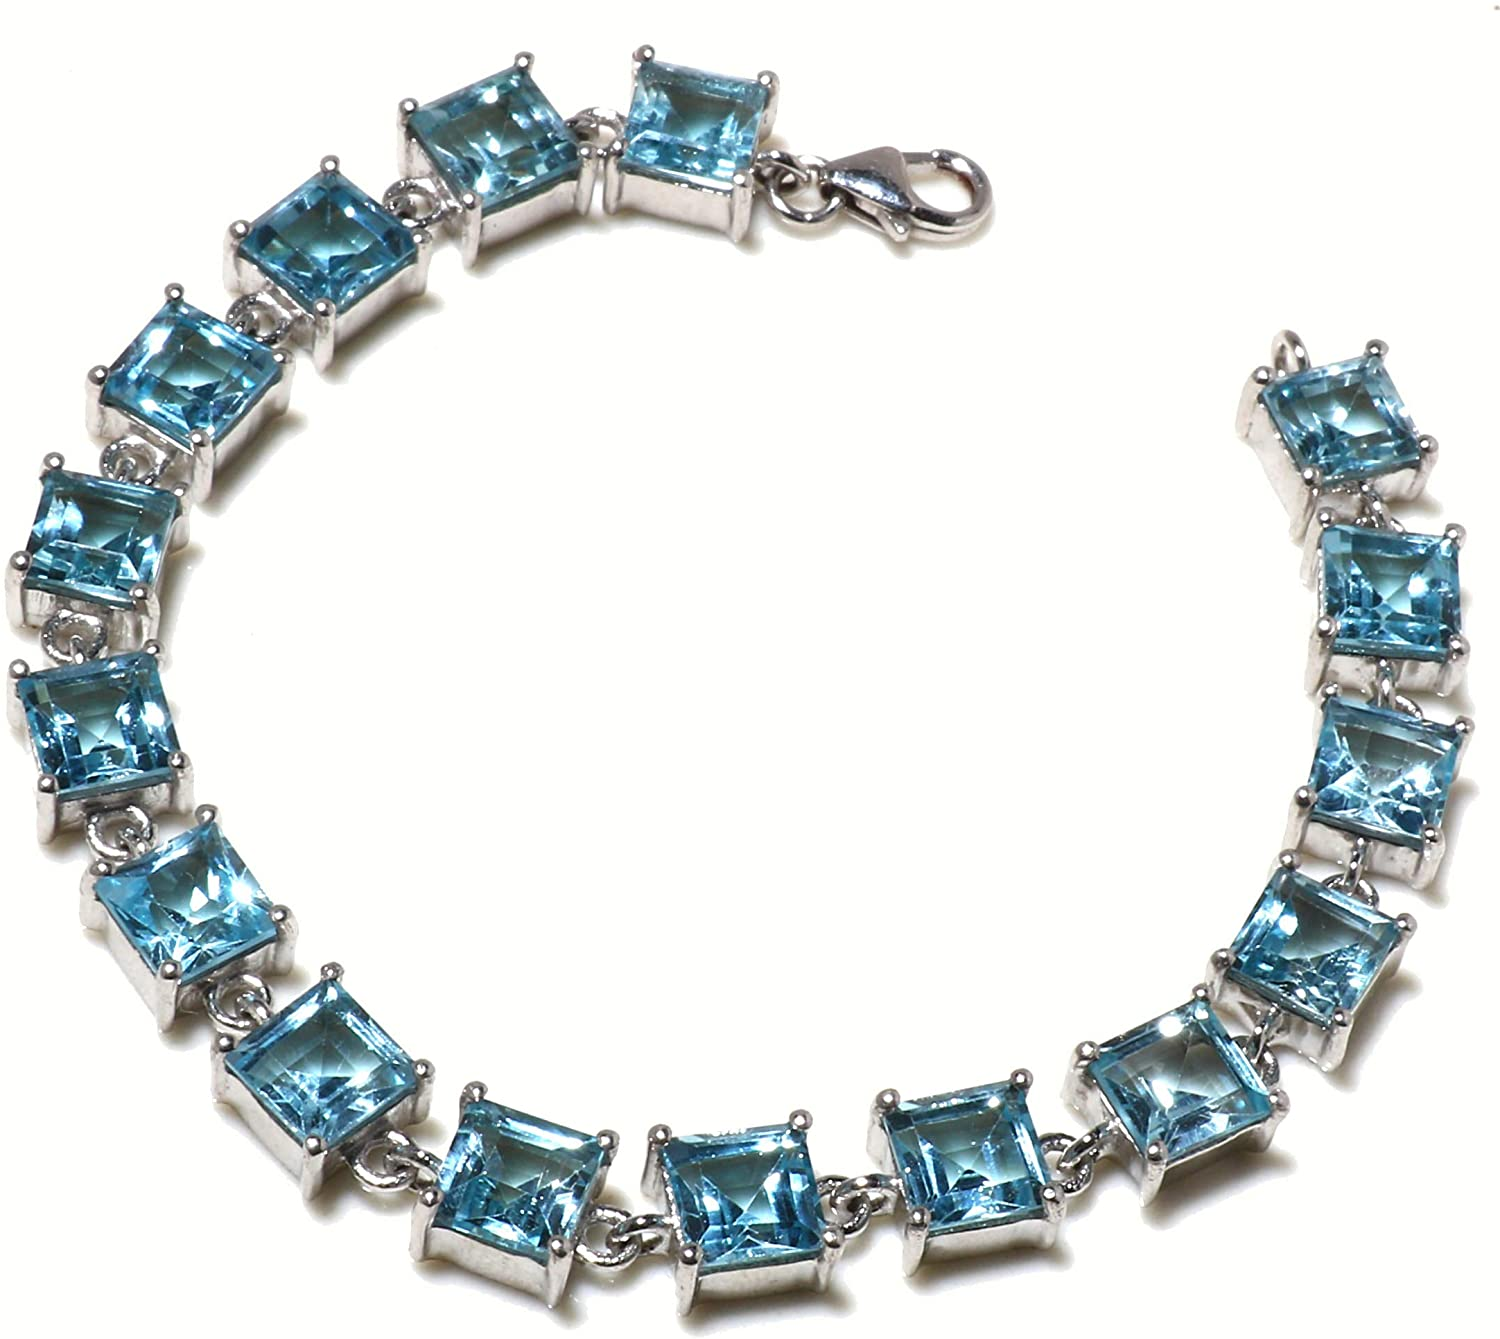 Tibetan Silver Genuine Blue Topaz Gemstone Bracelet for Women, Authentic 925 Sterling Silver Modern Fashion Unique Designer Party Jewelry Handmade Artisans, December Birthstone/Length: 6.5